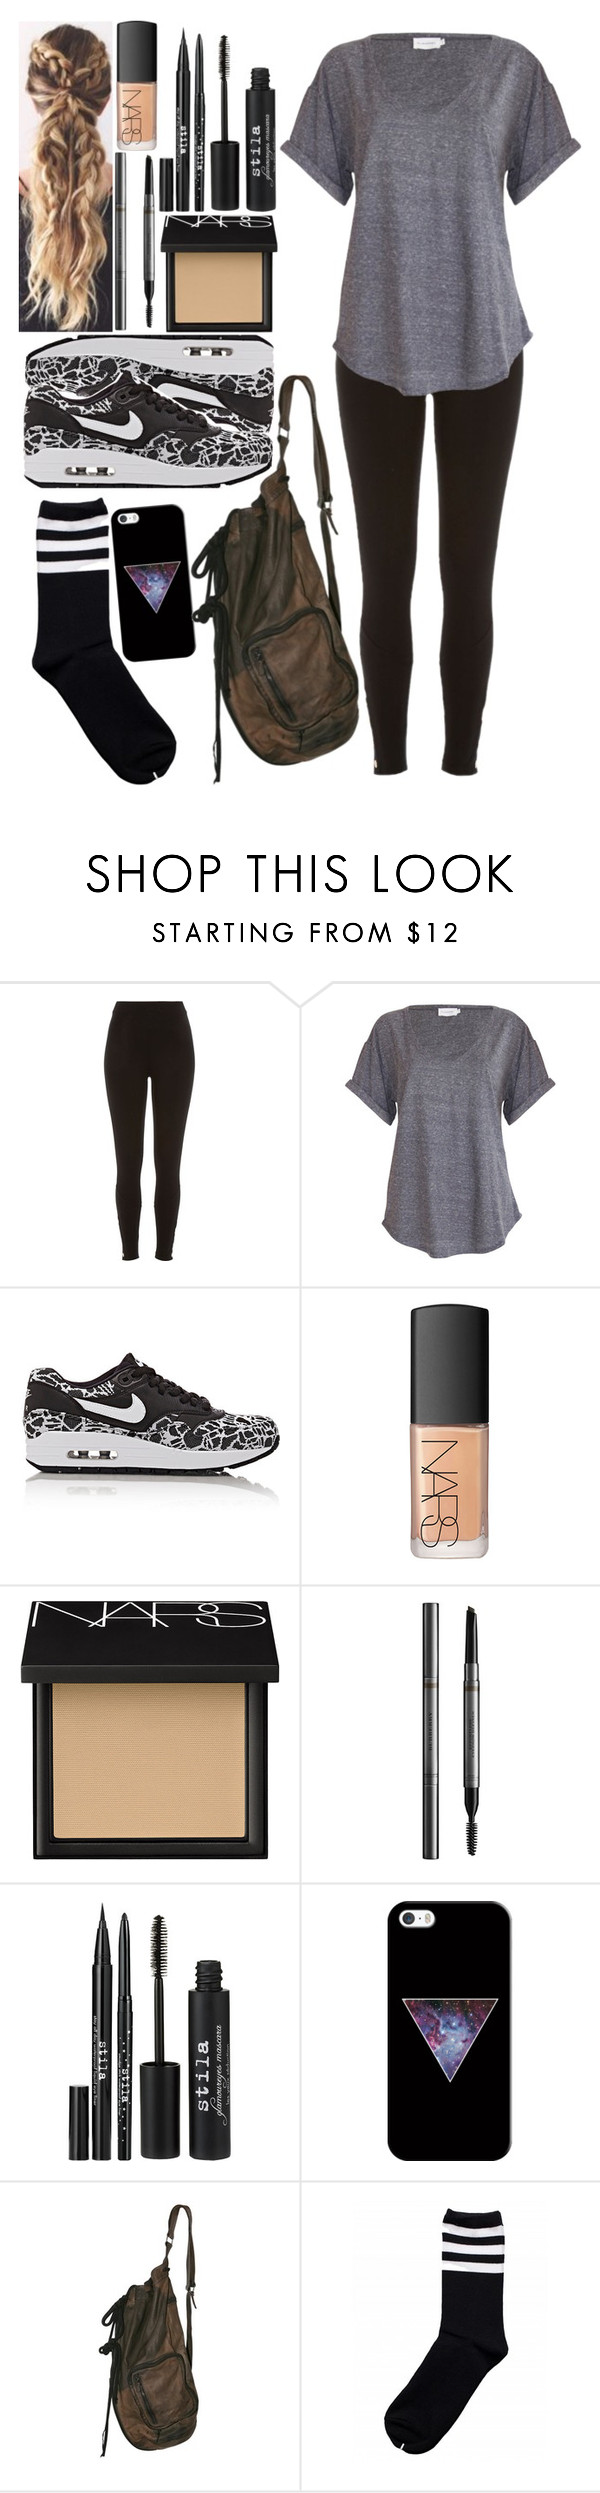 """I'm getting Pal's the rest of the world can't."" by me-is-a-pizza ❤ liked on Polyvore featuring River Island, NIKE, NARS Cosmetics, Burberry, Stila and Casetify"